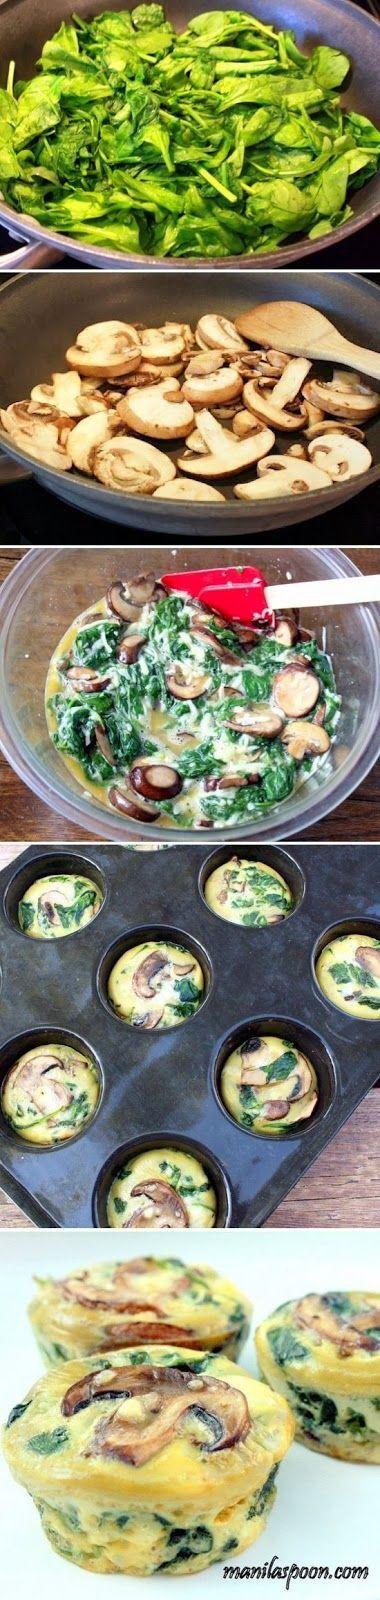 Spinach leaves, mushrooms, scrambled egg